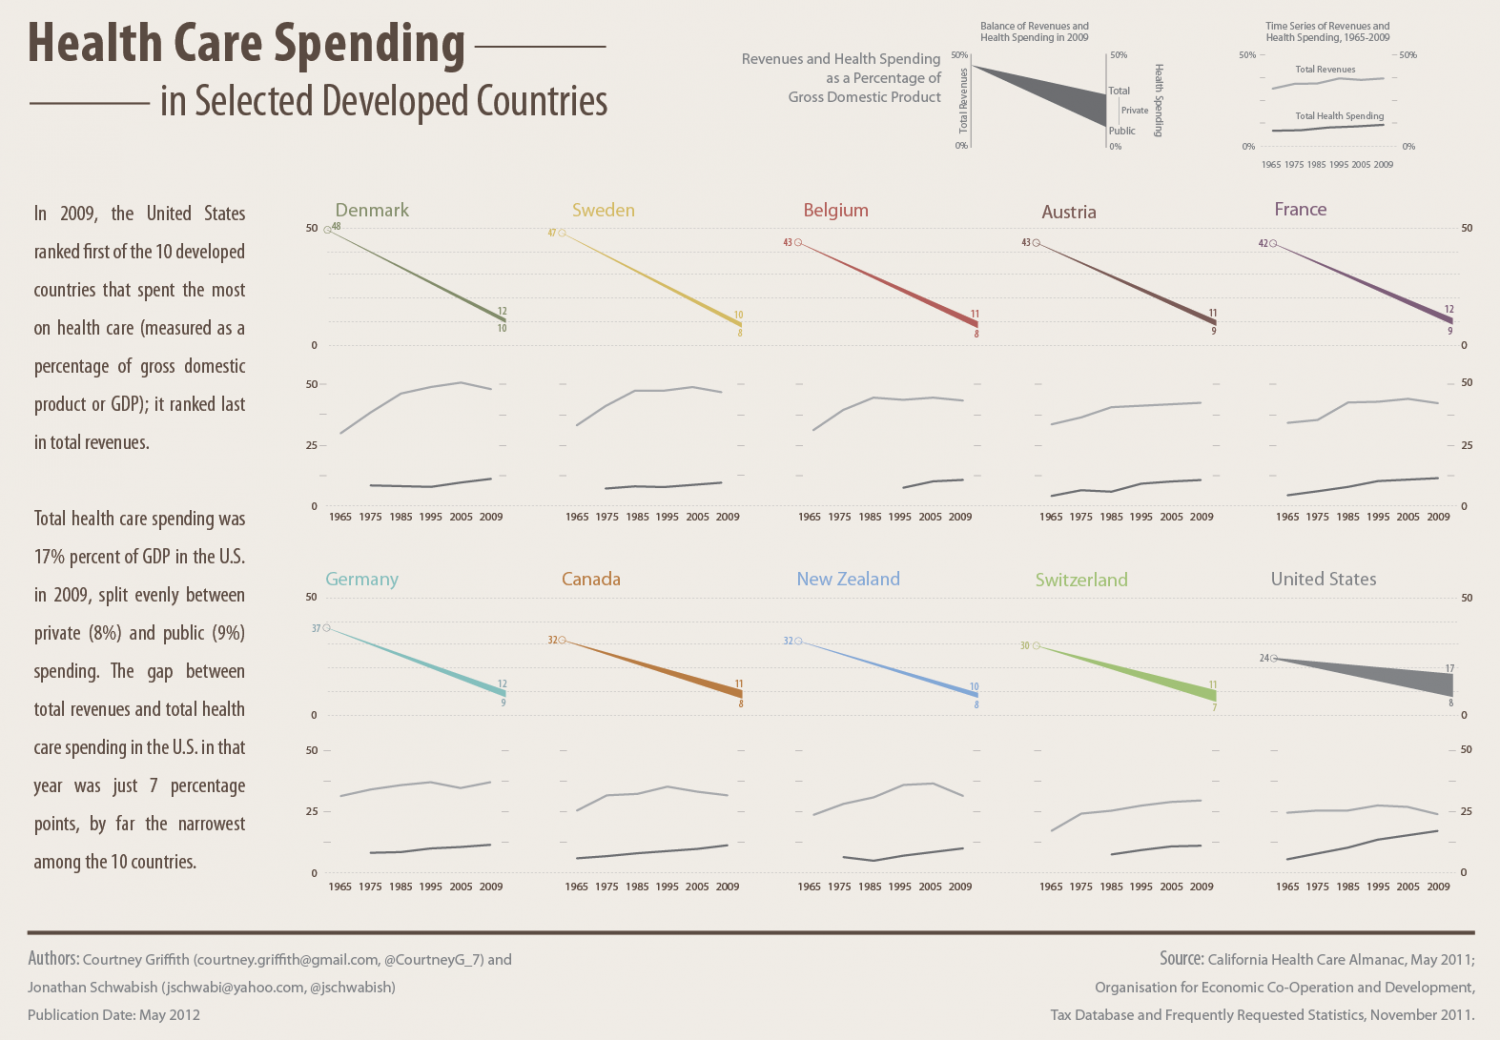 Health Care Spending in Developed Countries Infographic